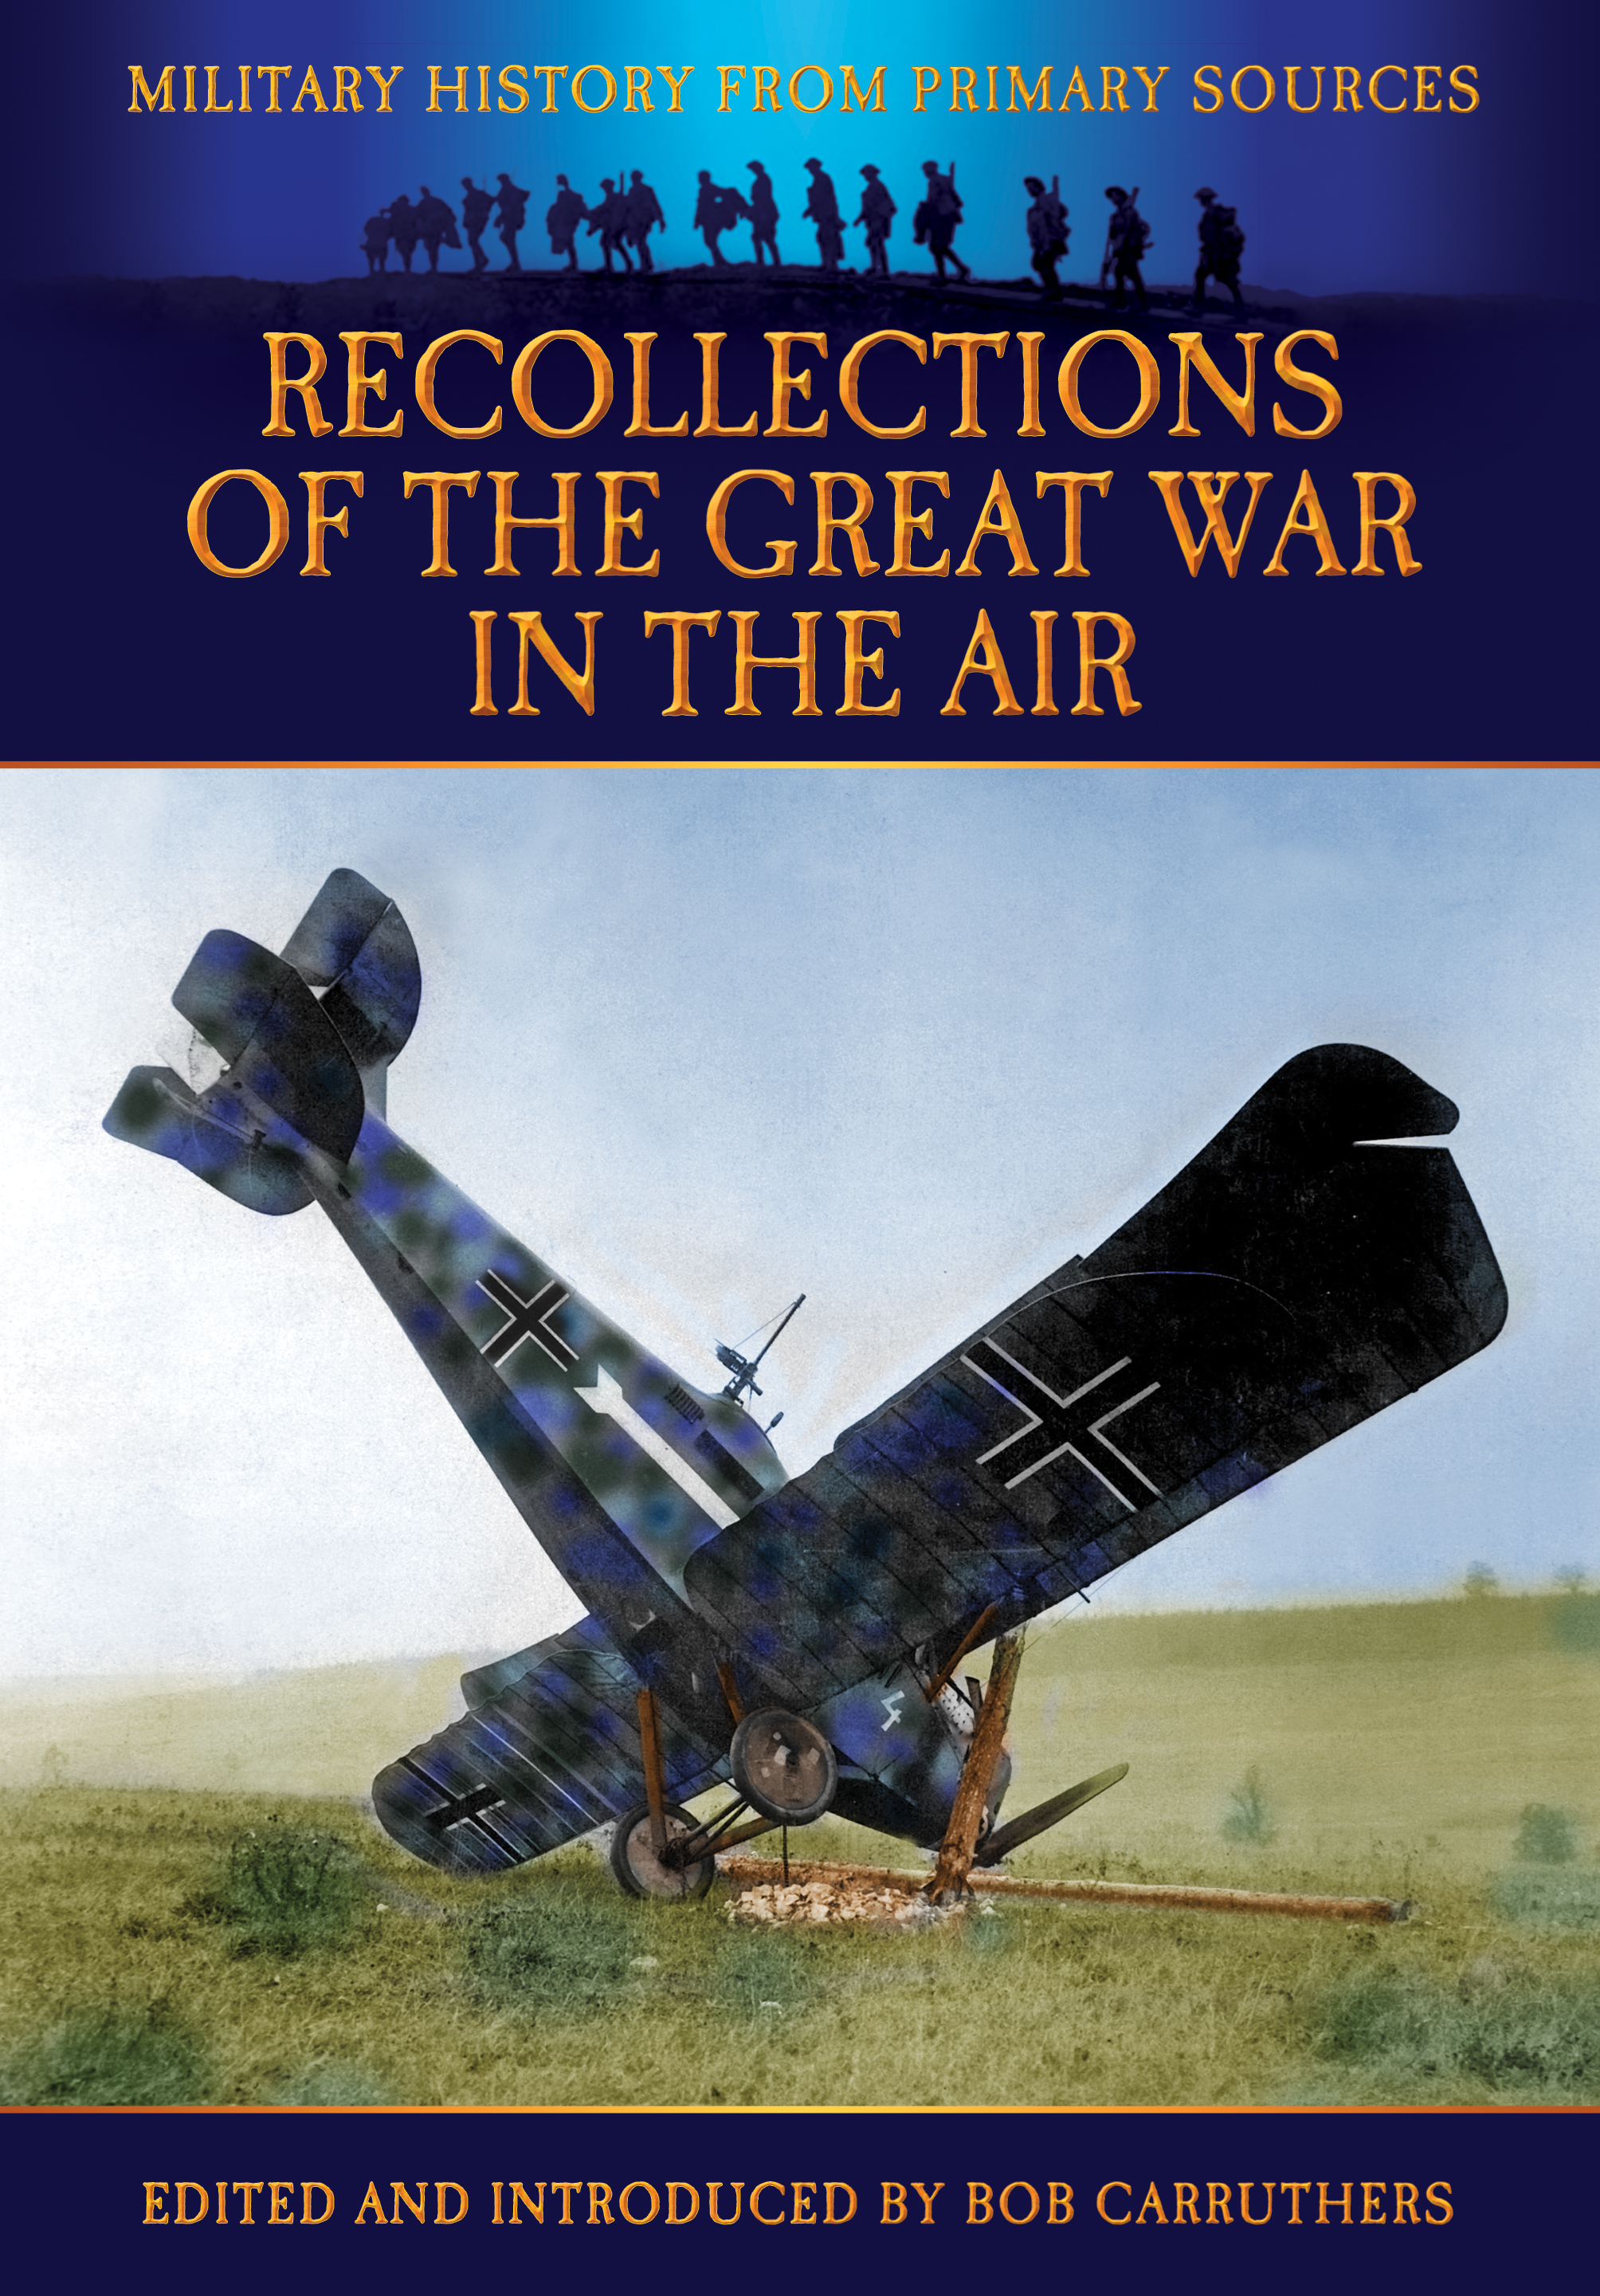 Recollections of the Great War in Air